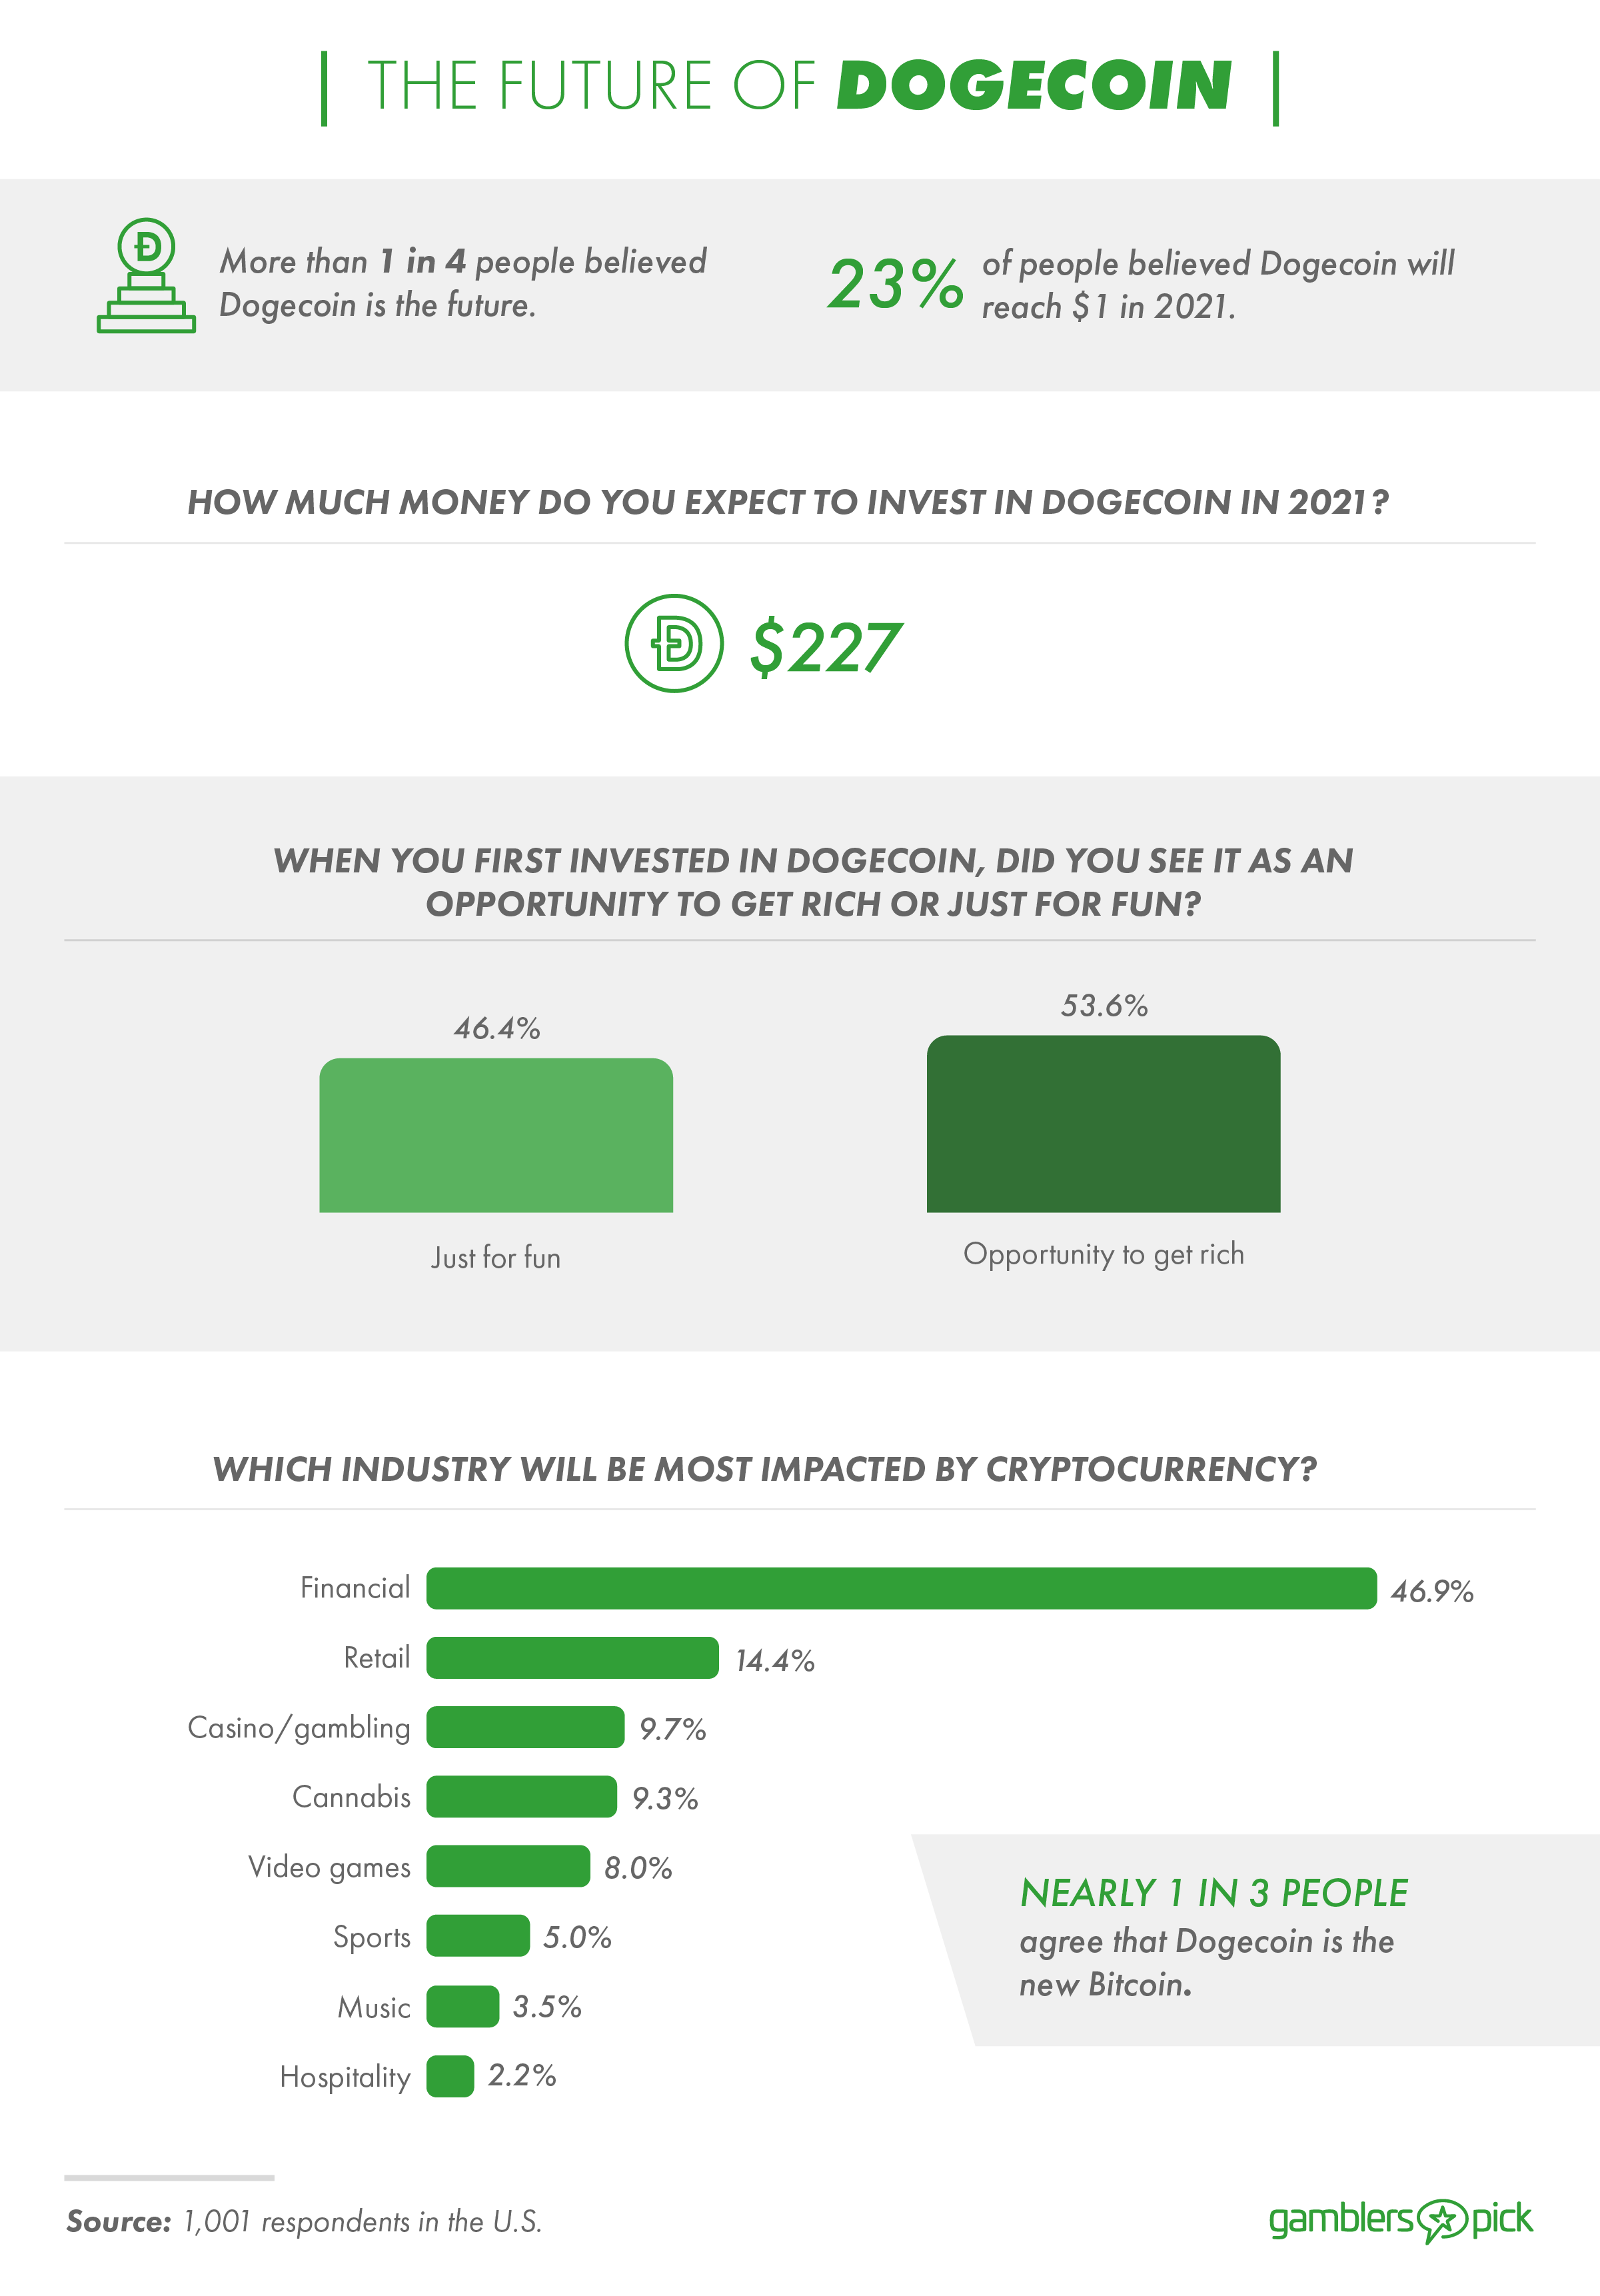 1 in 4 people believe Dogecoin is the future.